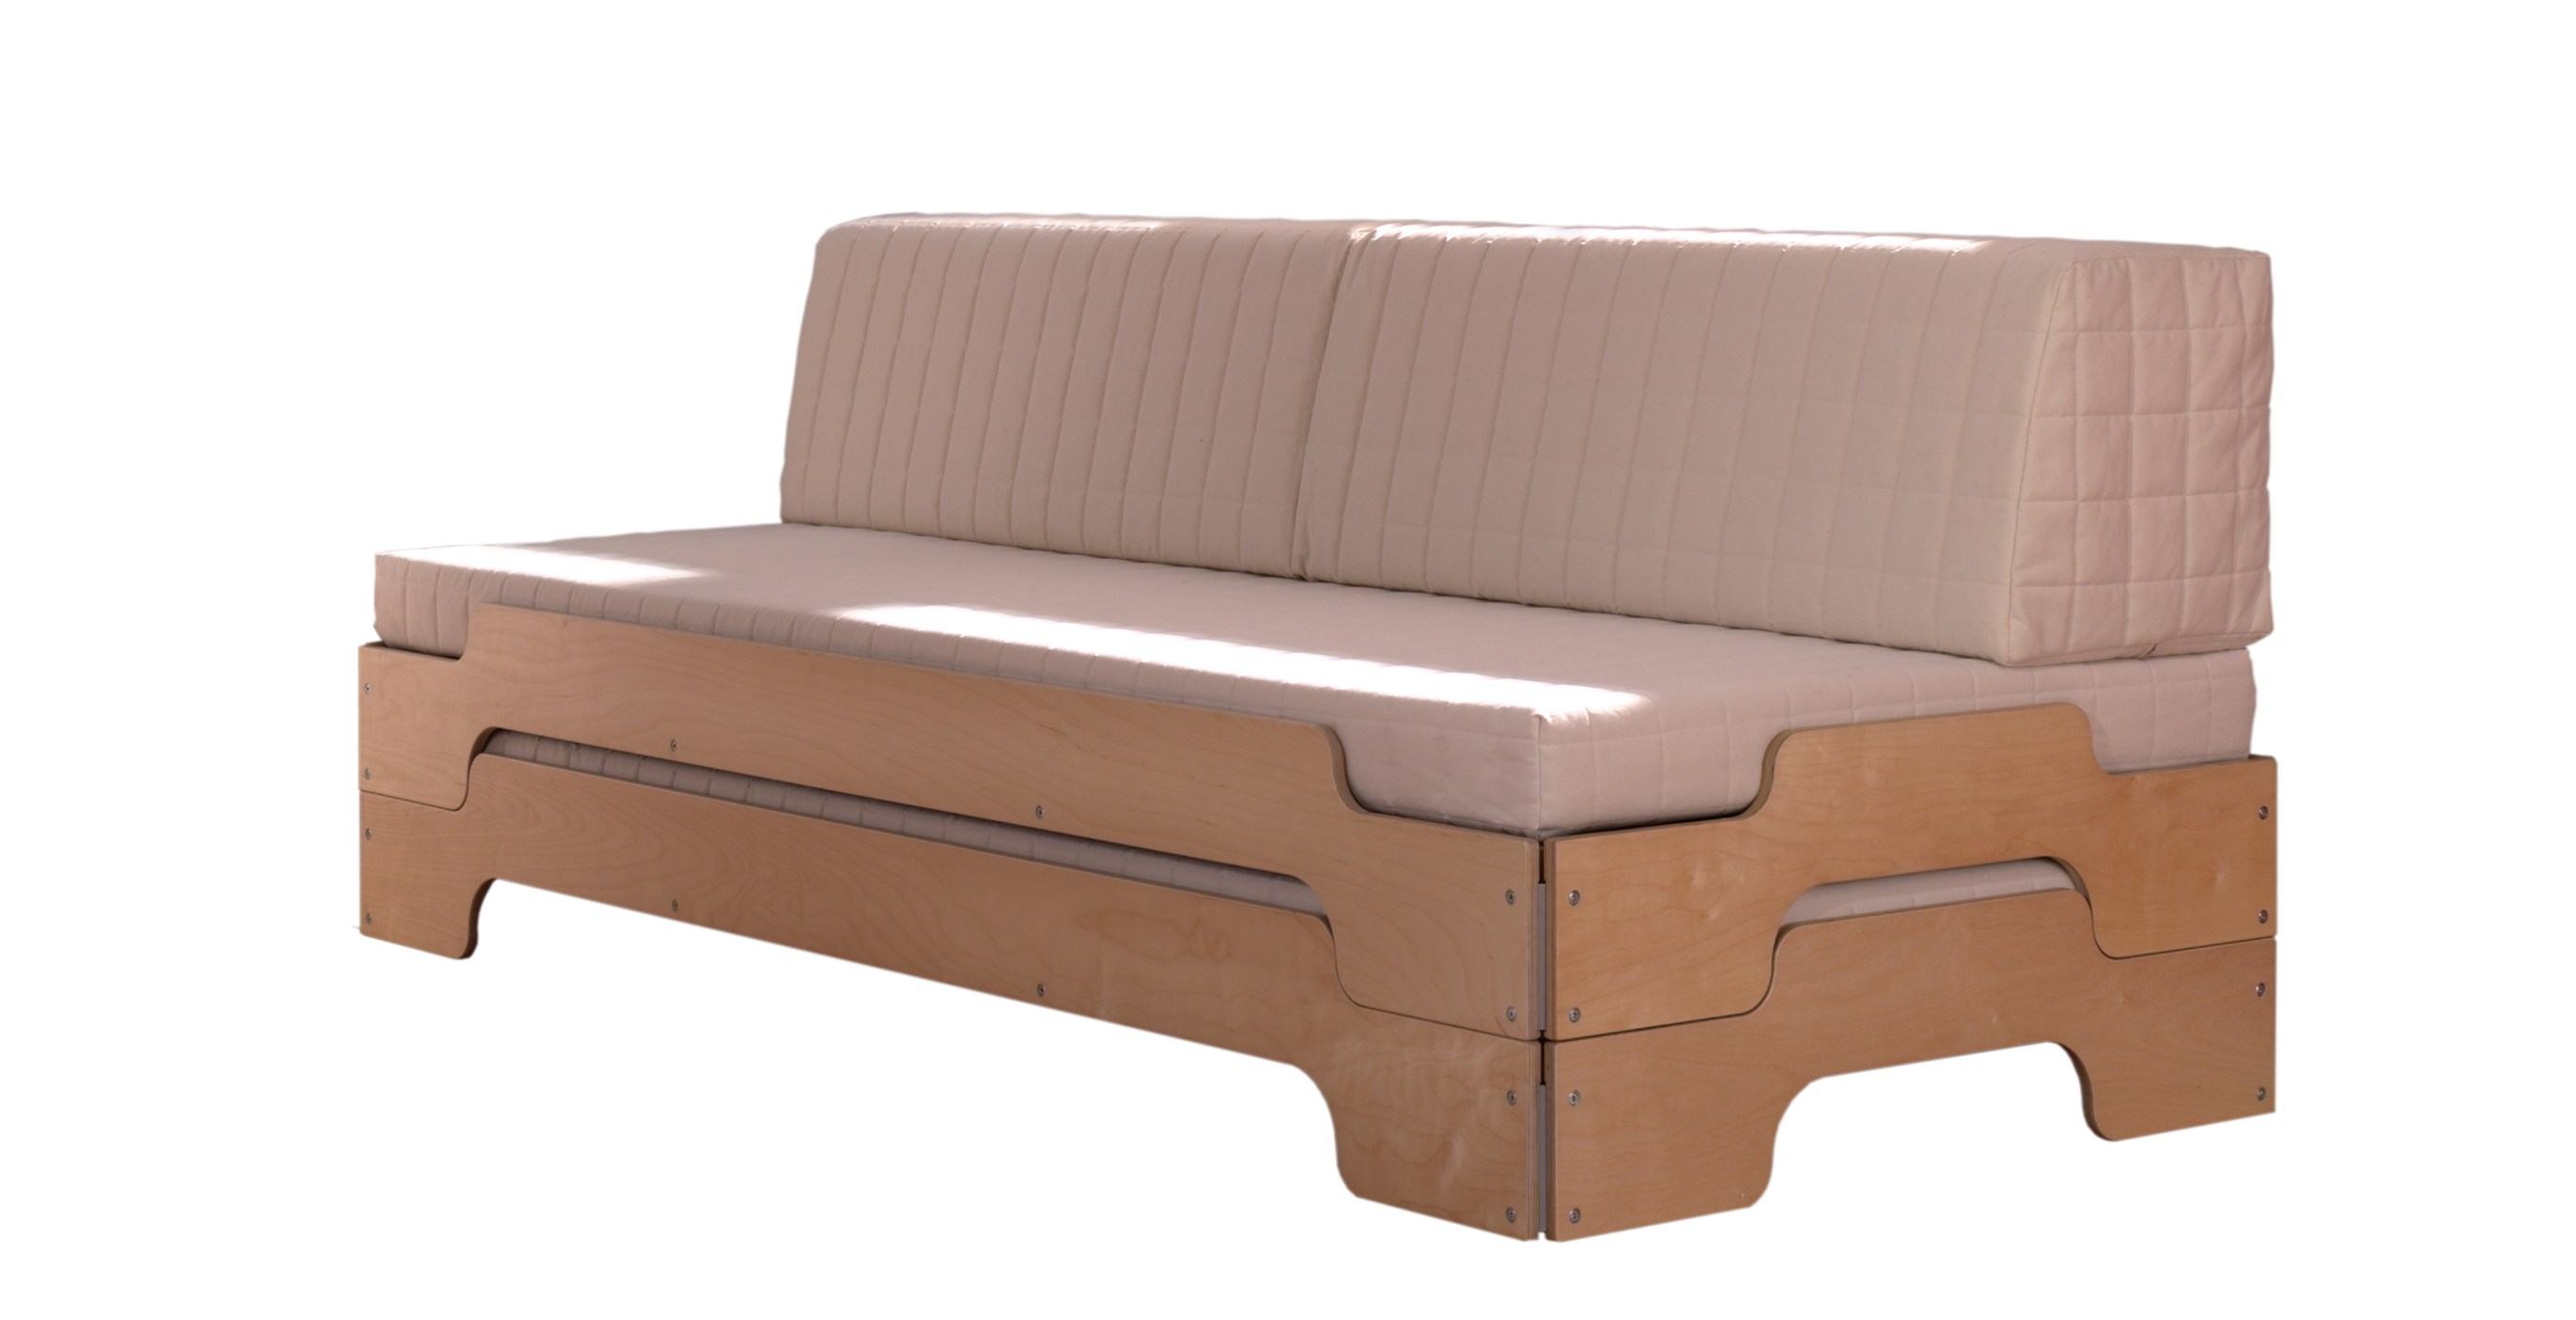 Stackable Single Bed STACKABLE BED By Mller